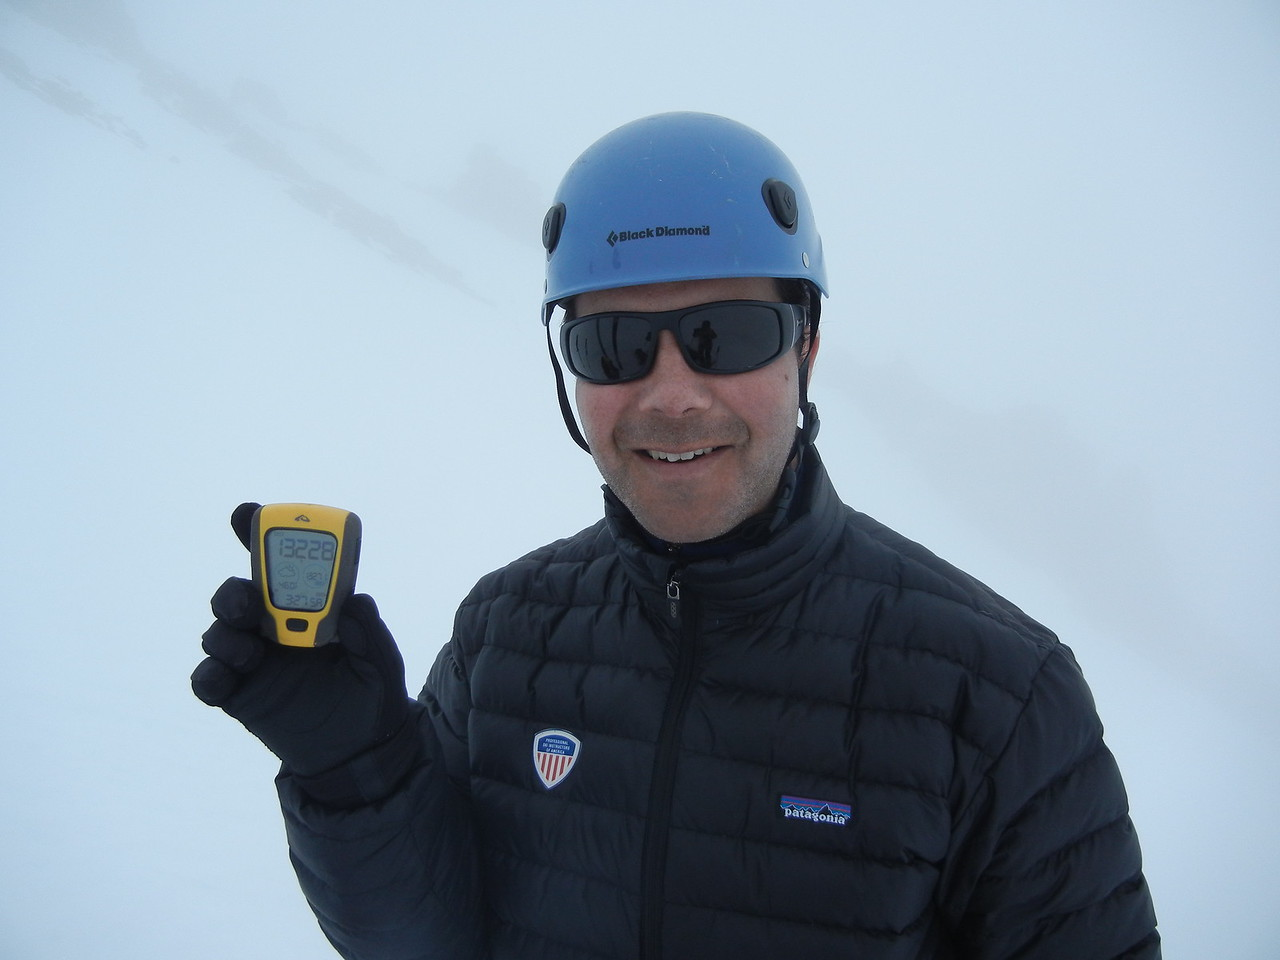 Kathy and I made it as high as 13,228 feet (the altimeter I am holding) before we turned around due to fog.